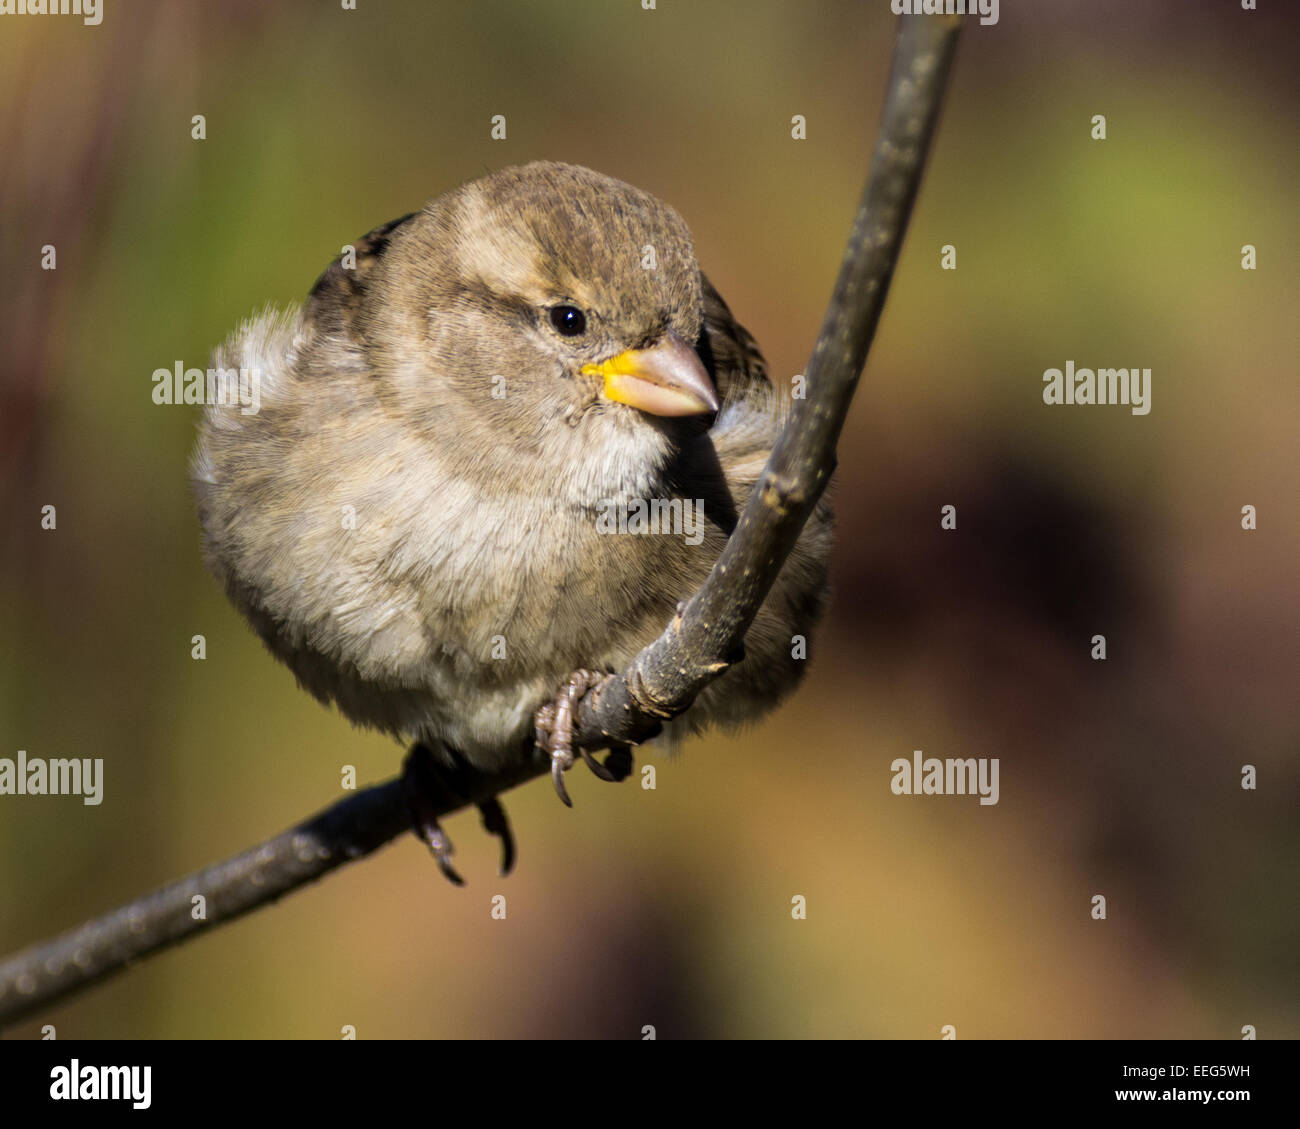 A house sparrow perched on a branch. - Stock Image